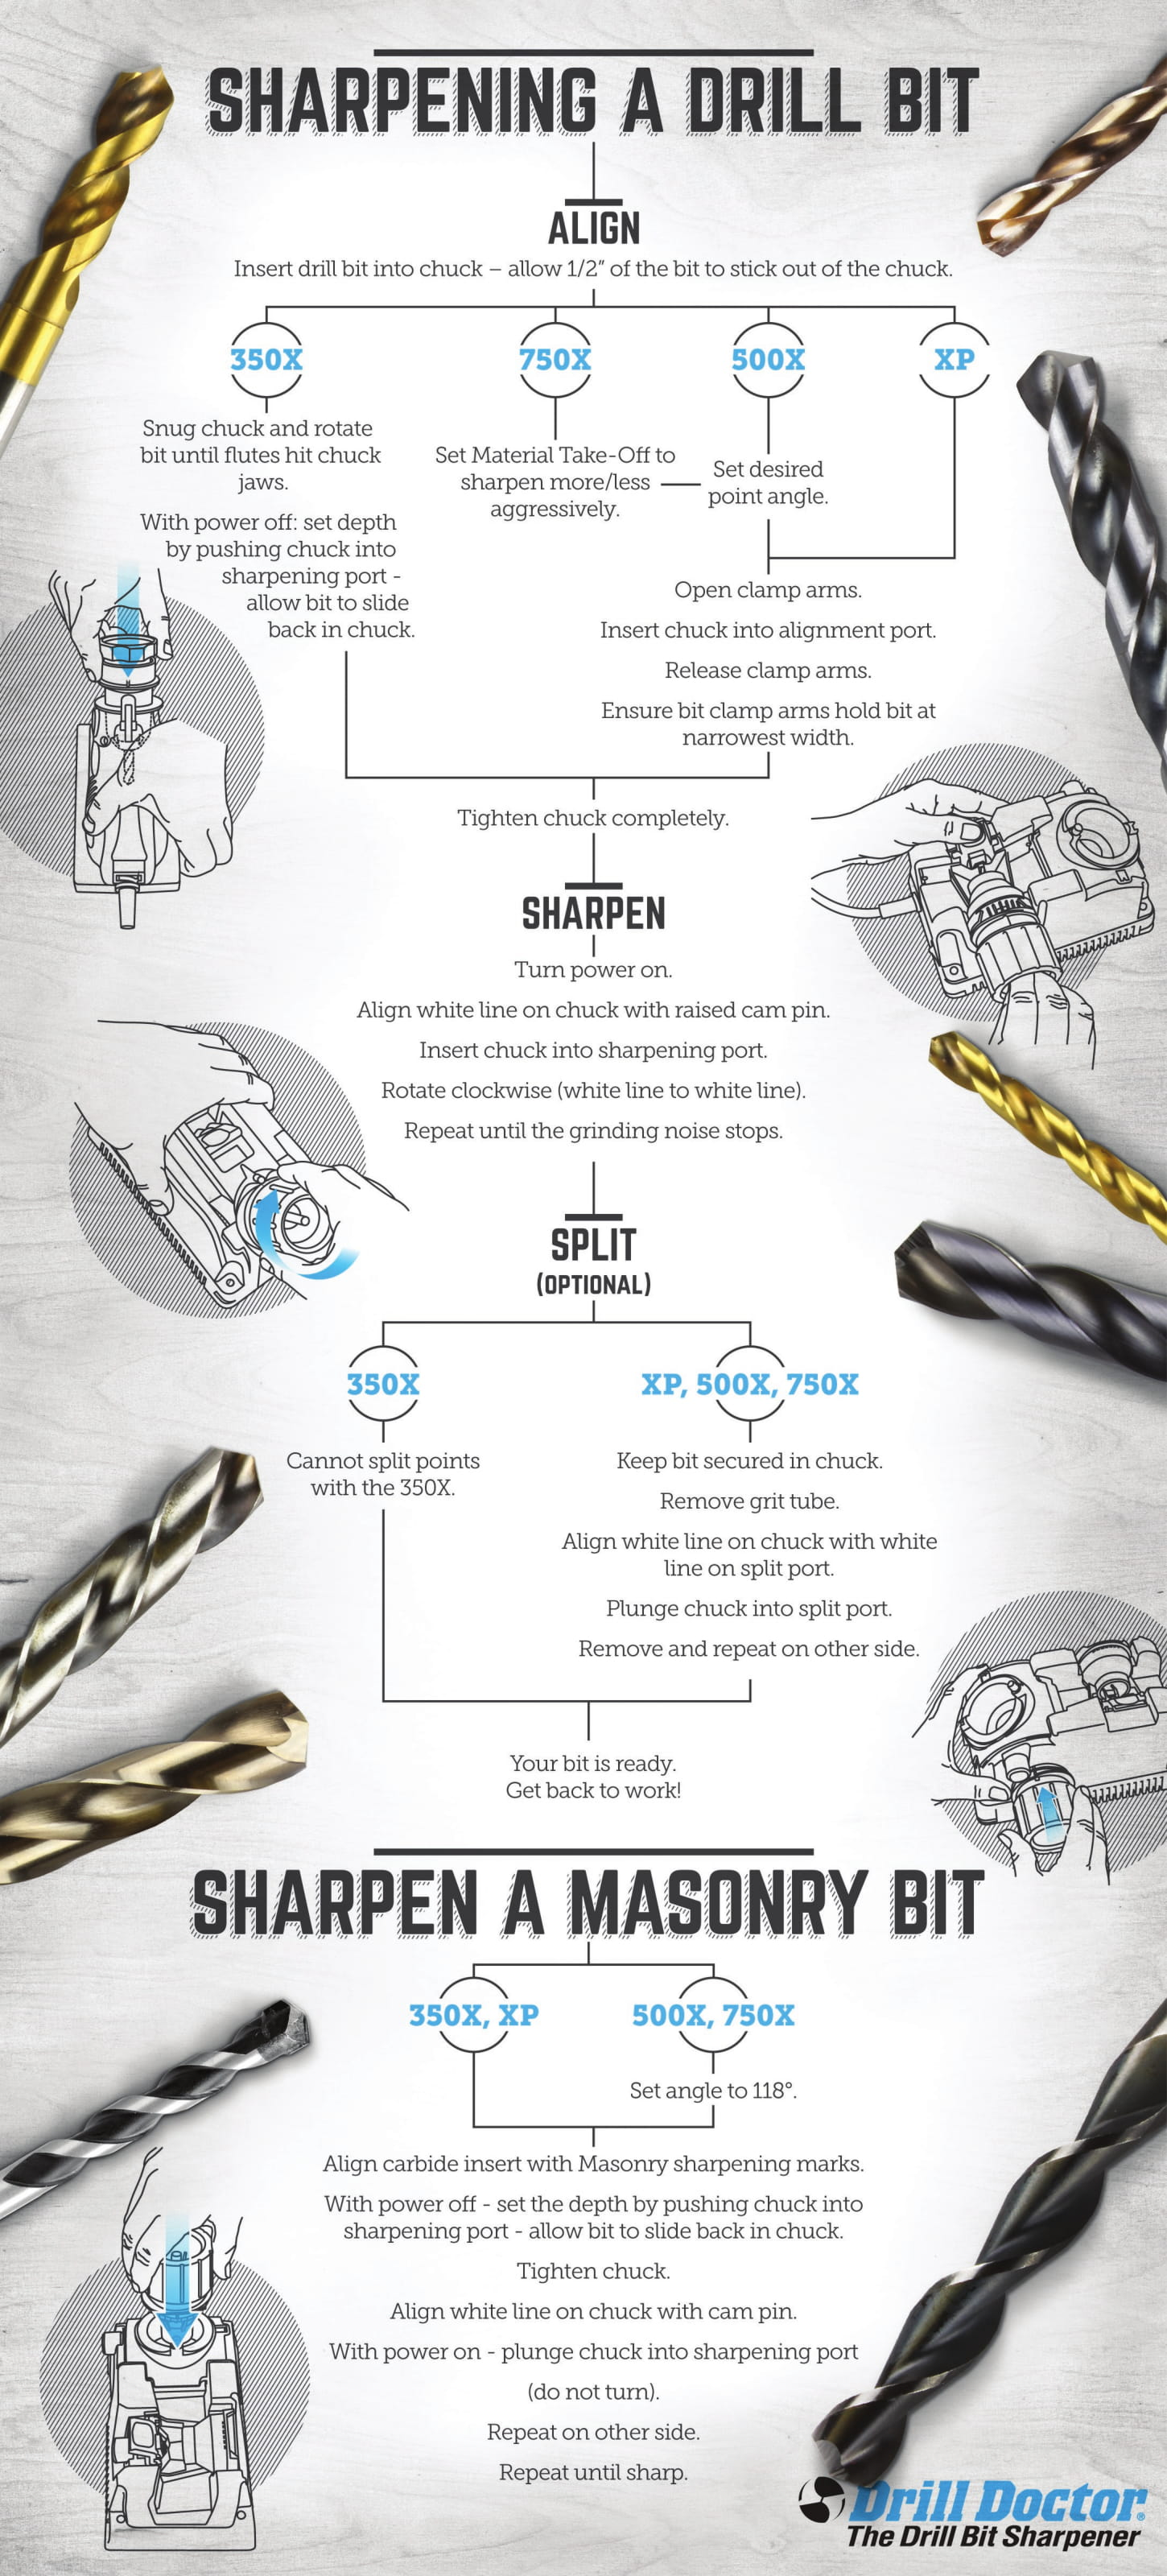 how to sharpen a drill bit using drill doctor